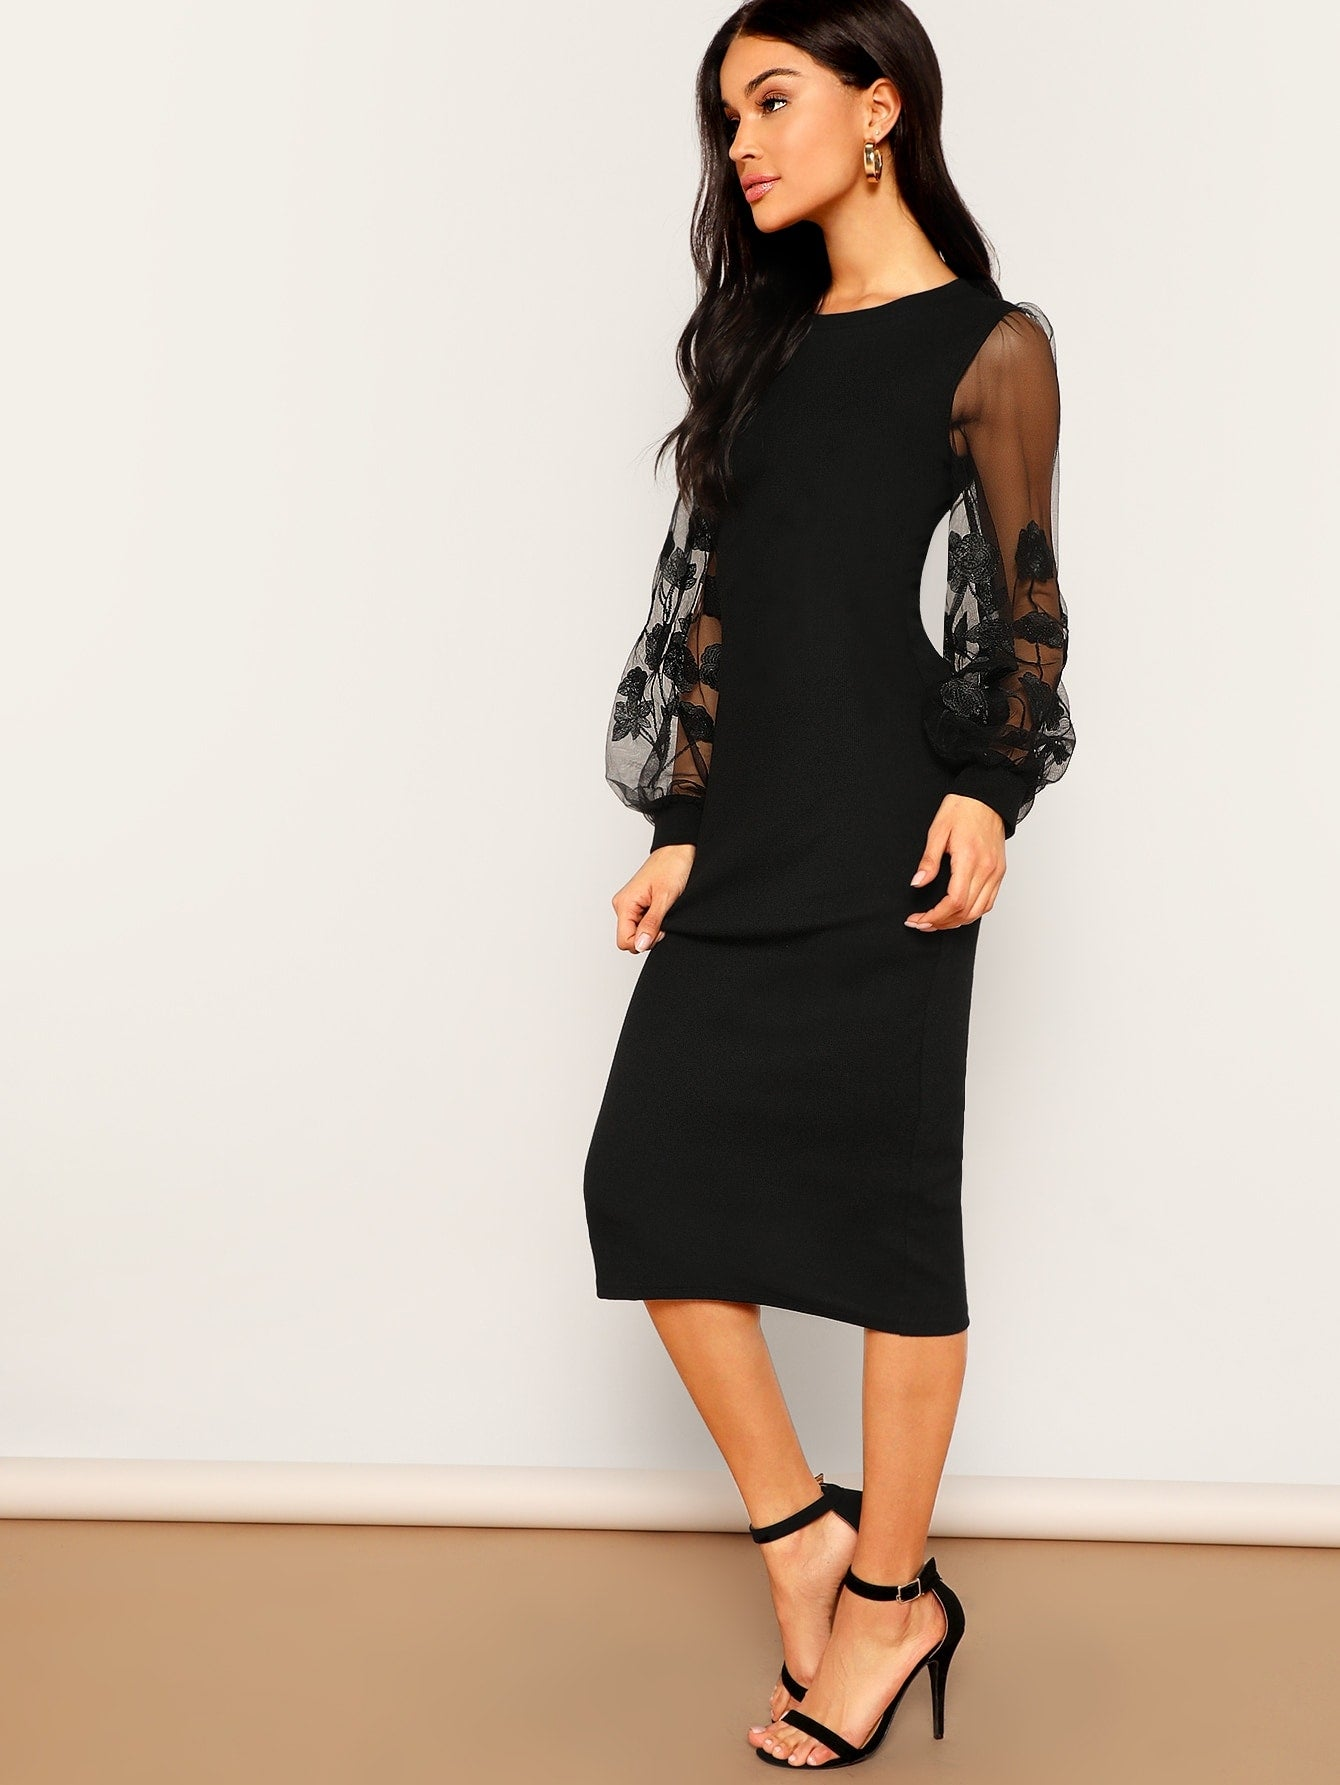 Embroidery Mesh Insert Puff Sleeve Fitted Dress-Elegant-Trendy-JayBoutique-XS-Trendy-JayBoutique